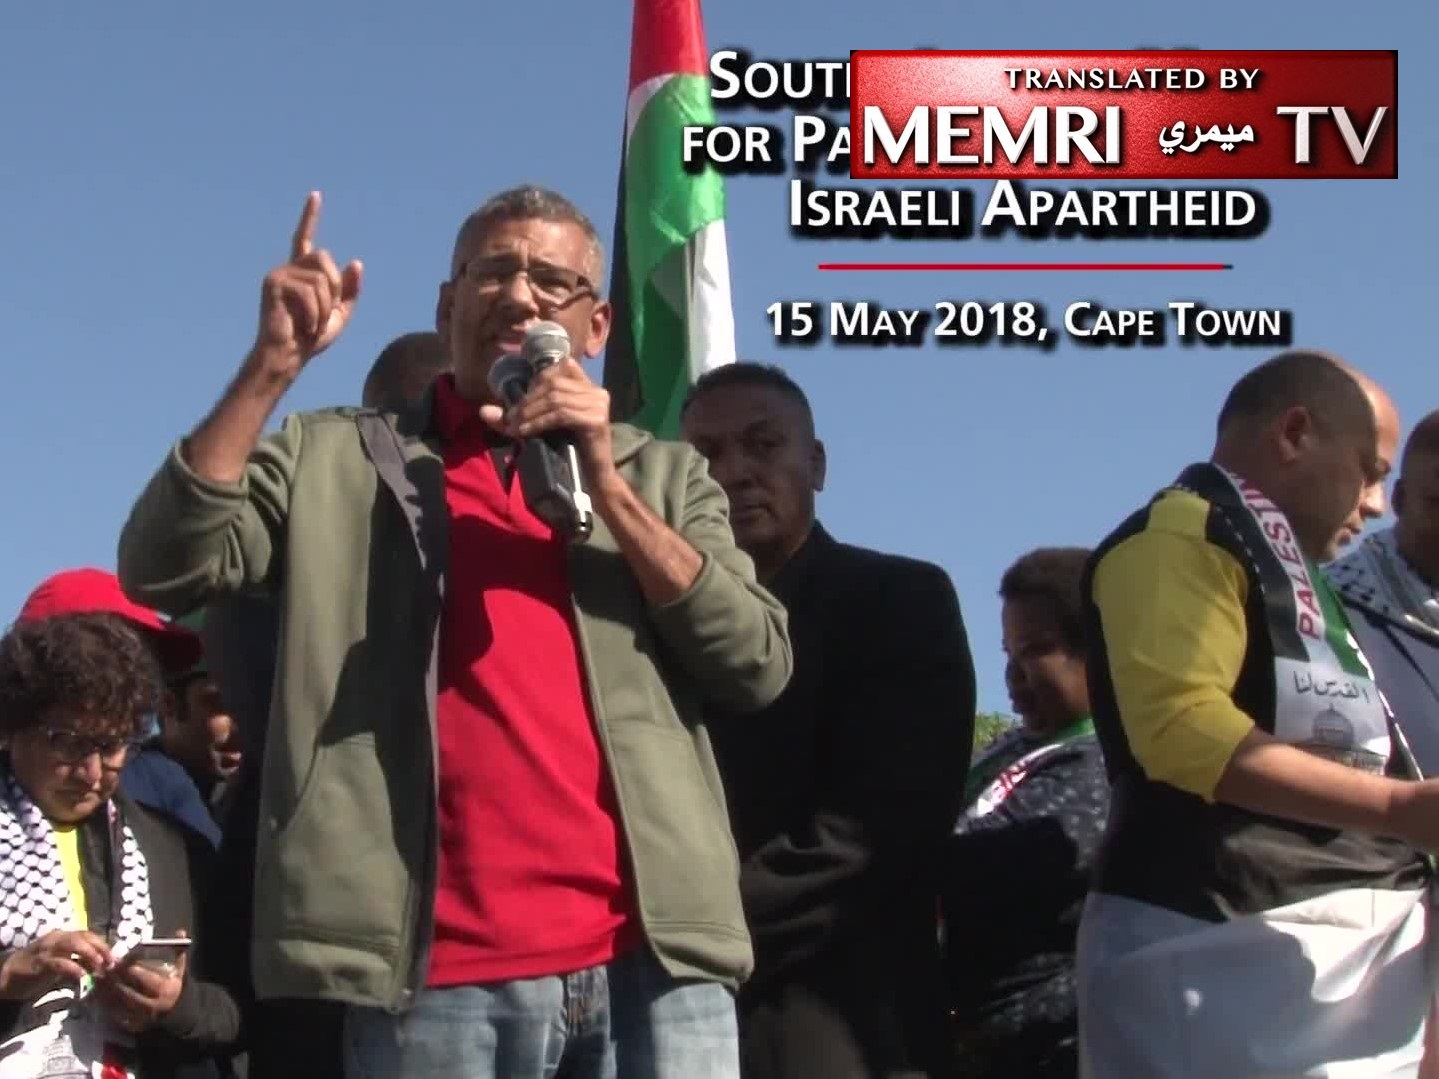 South African Politician Tony Ehrenreich at BDS March Calls to Expel Israeli Ambassador, Investigate SA Jewish Board of Deputies, Supporters of Israel Have No Place in SA